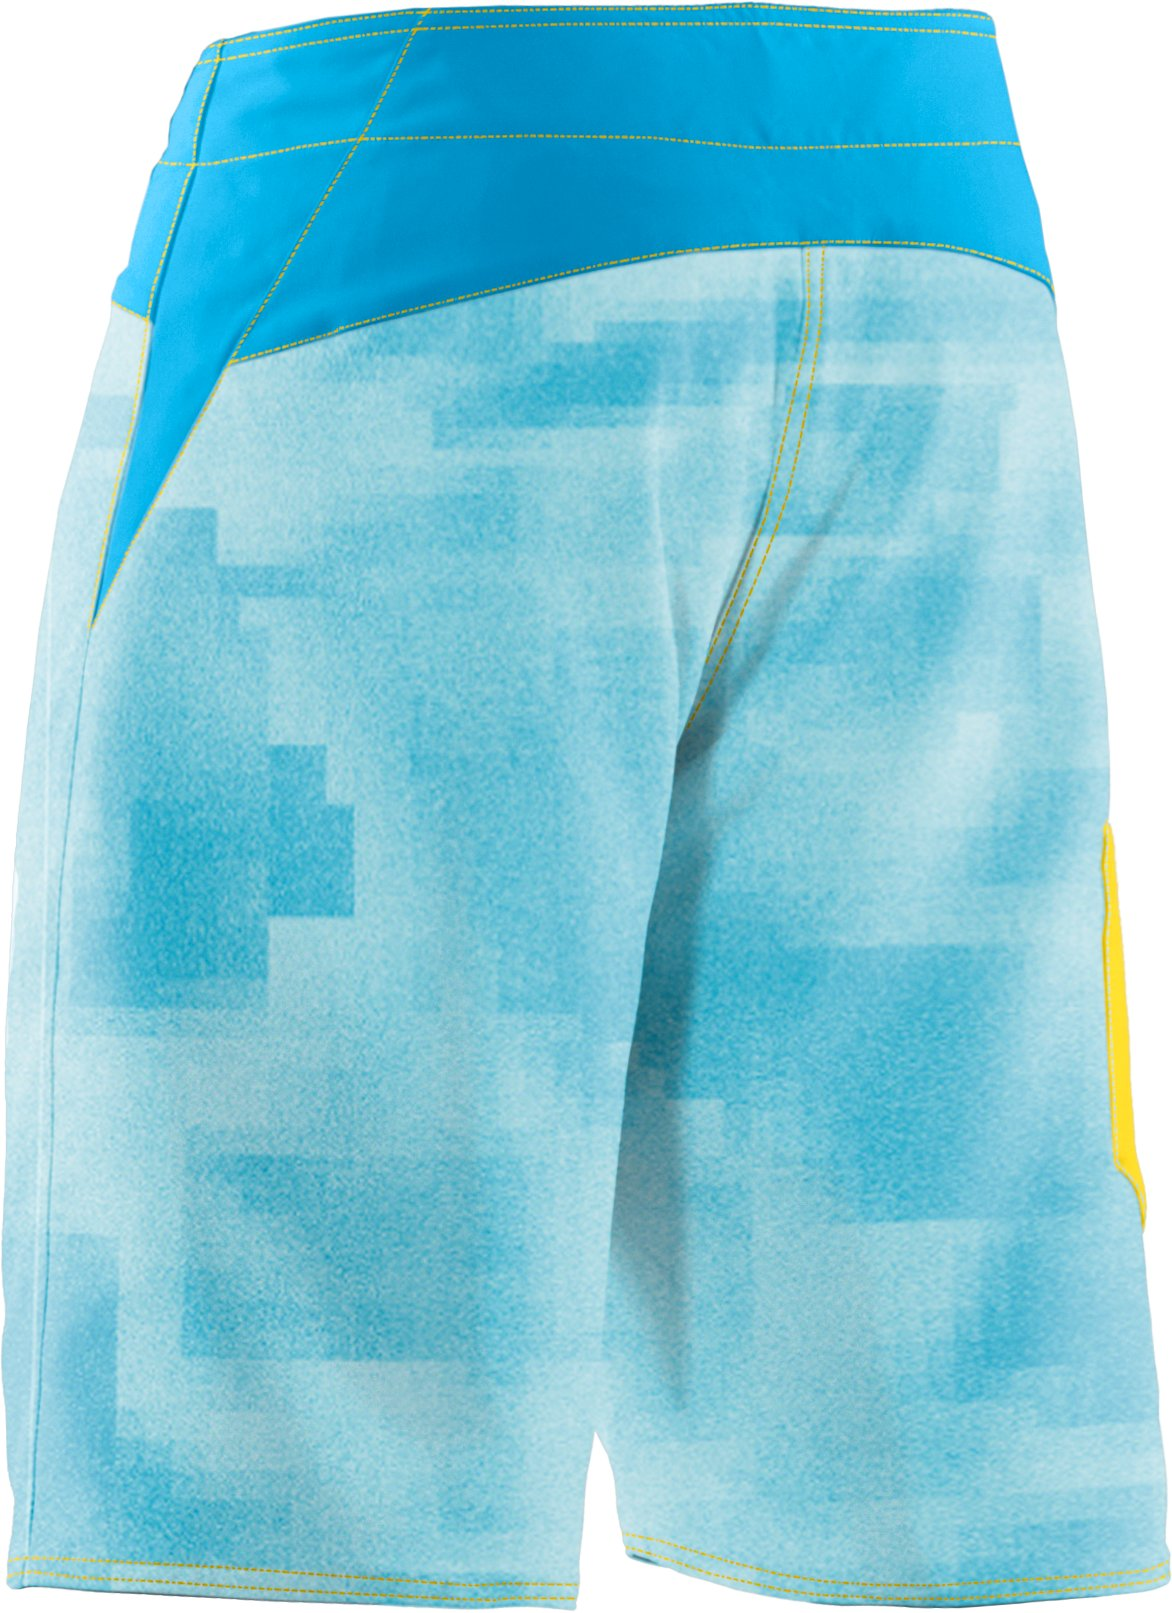 "Men's UA The Dunes 11"" Board Shorts, MAUI"